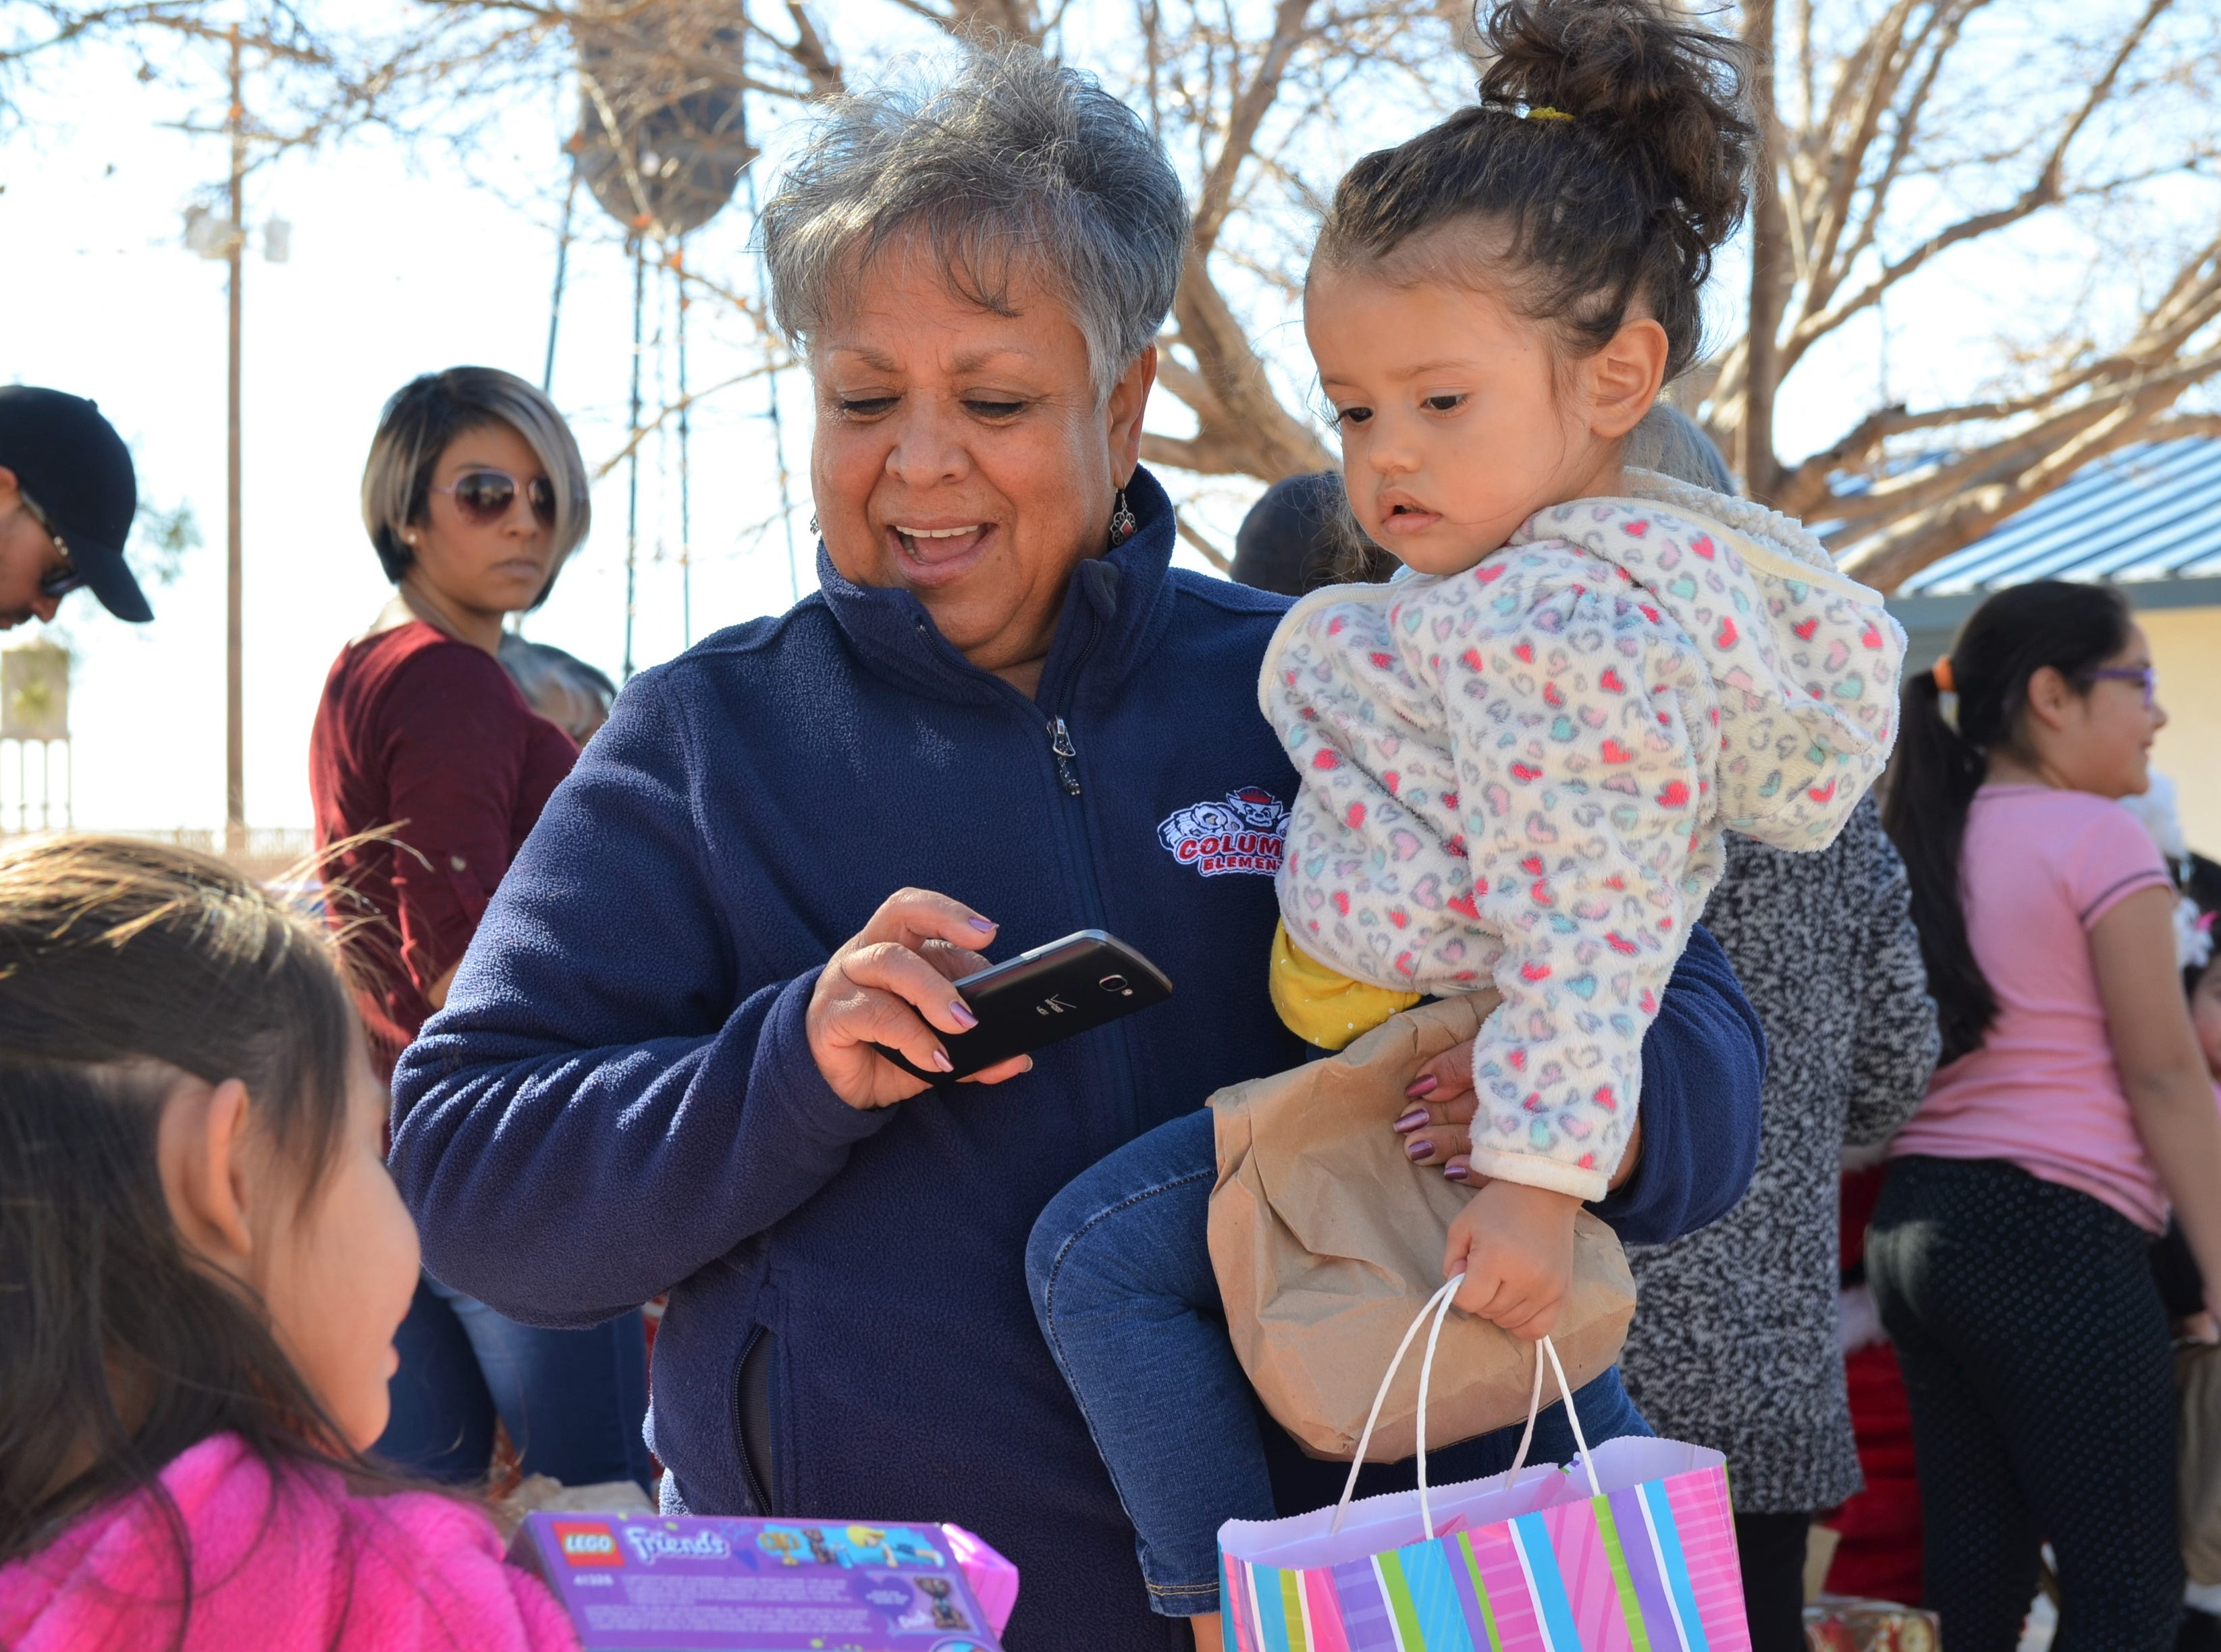 From middle to right, Carmen Porras and Carmen Sanchez, 2, look on to see what Mia Sanchez, 5, granddaughter and sister of the two has received from Santa.